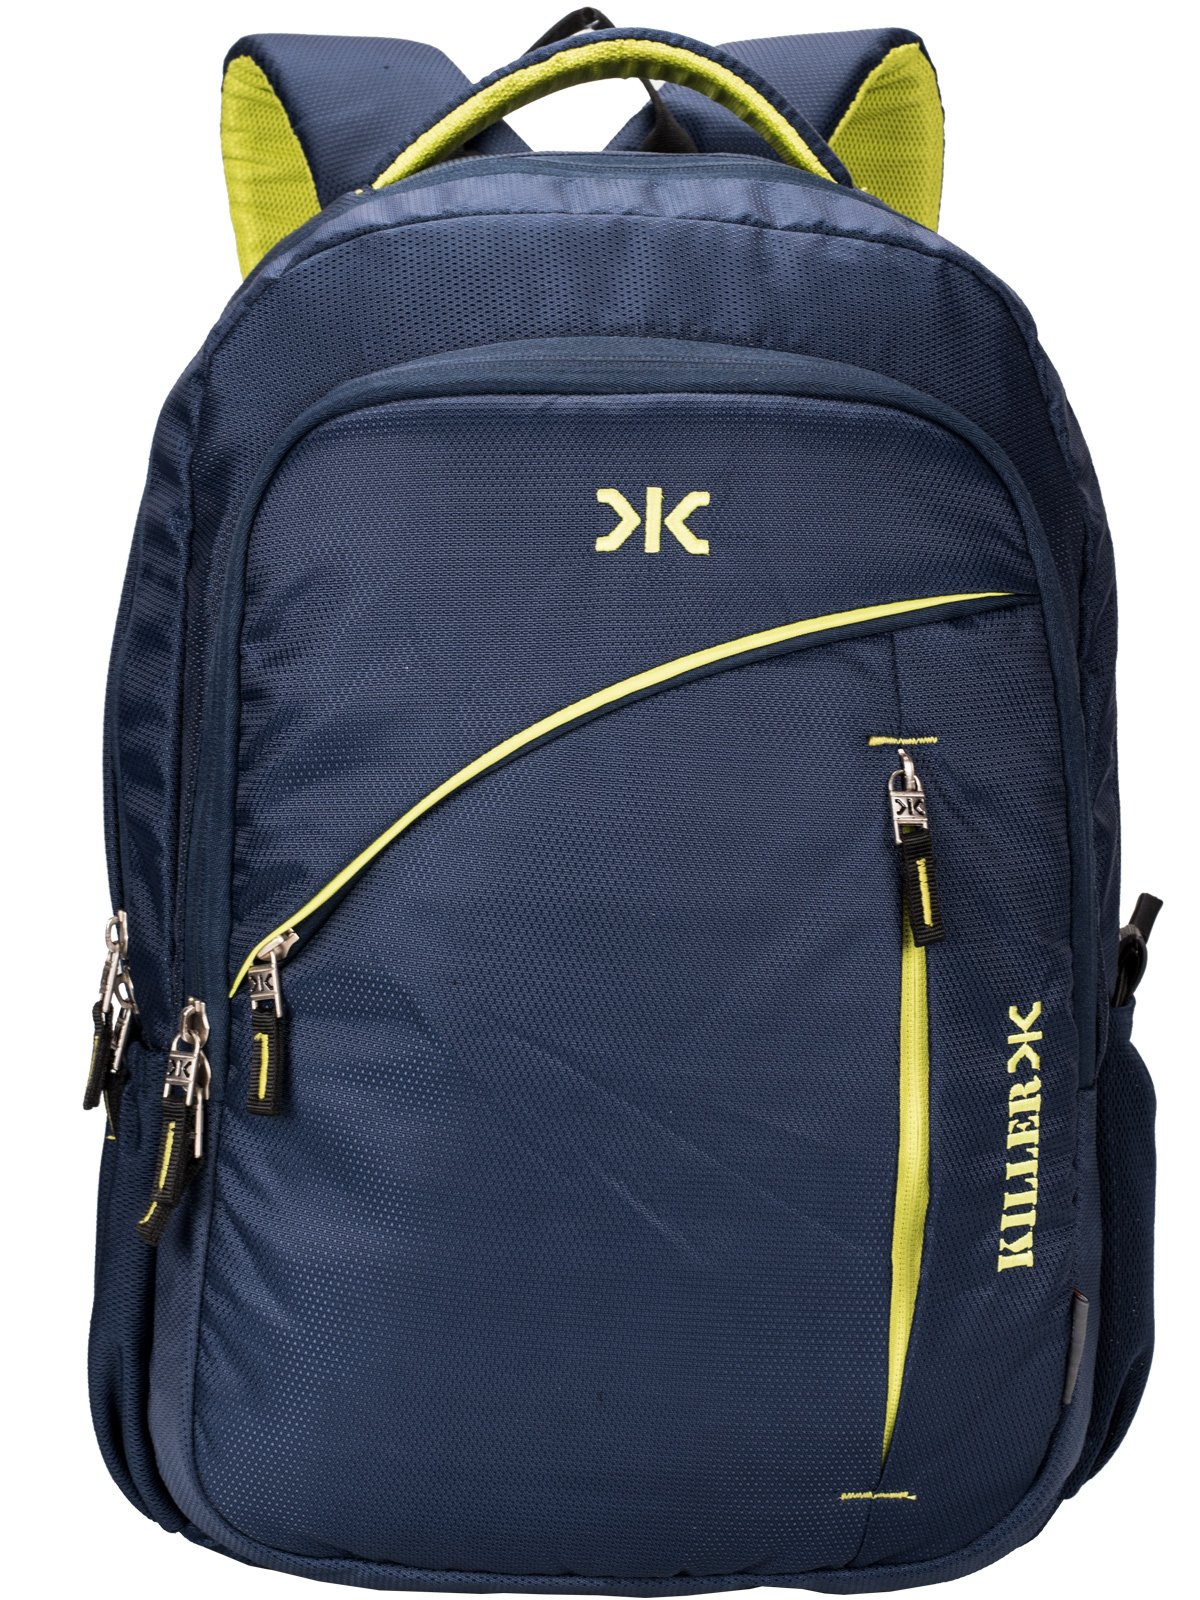 Killer Louis 38L Large Navy Blue Polyester Laptop Backpack with 3 Compartments product image